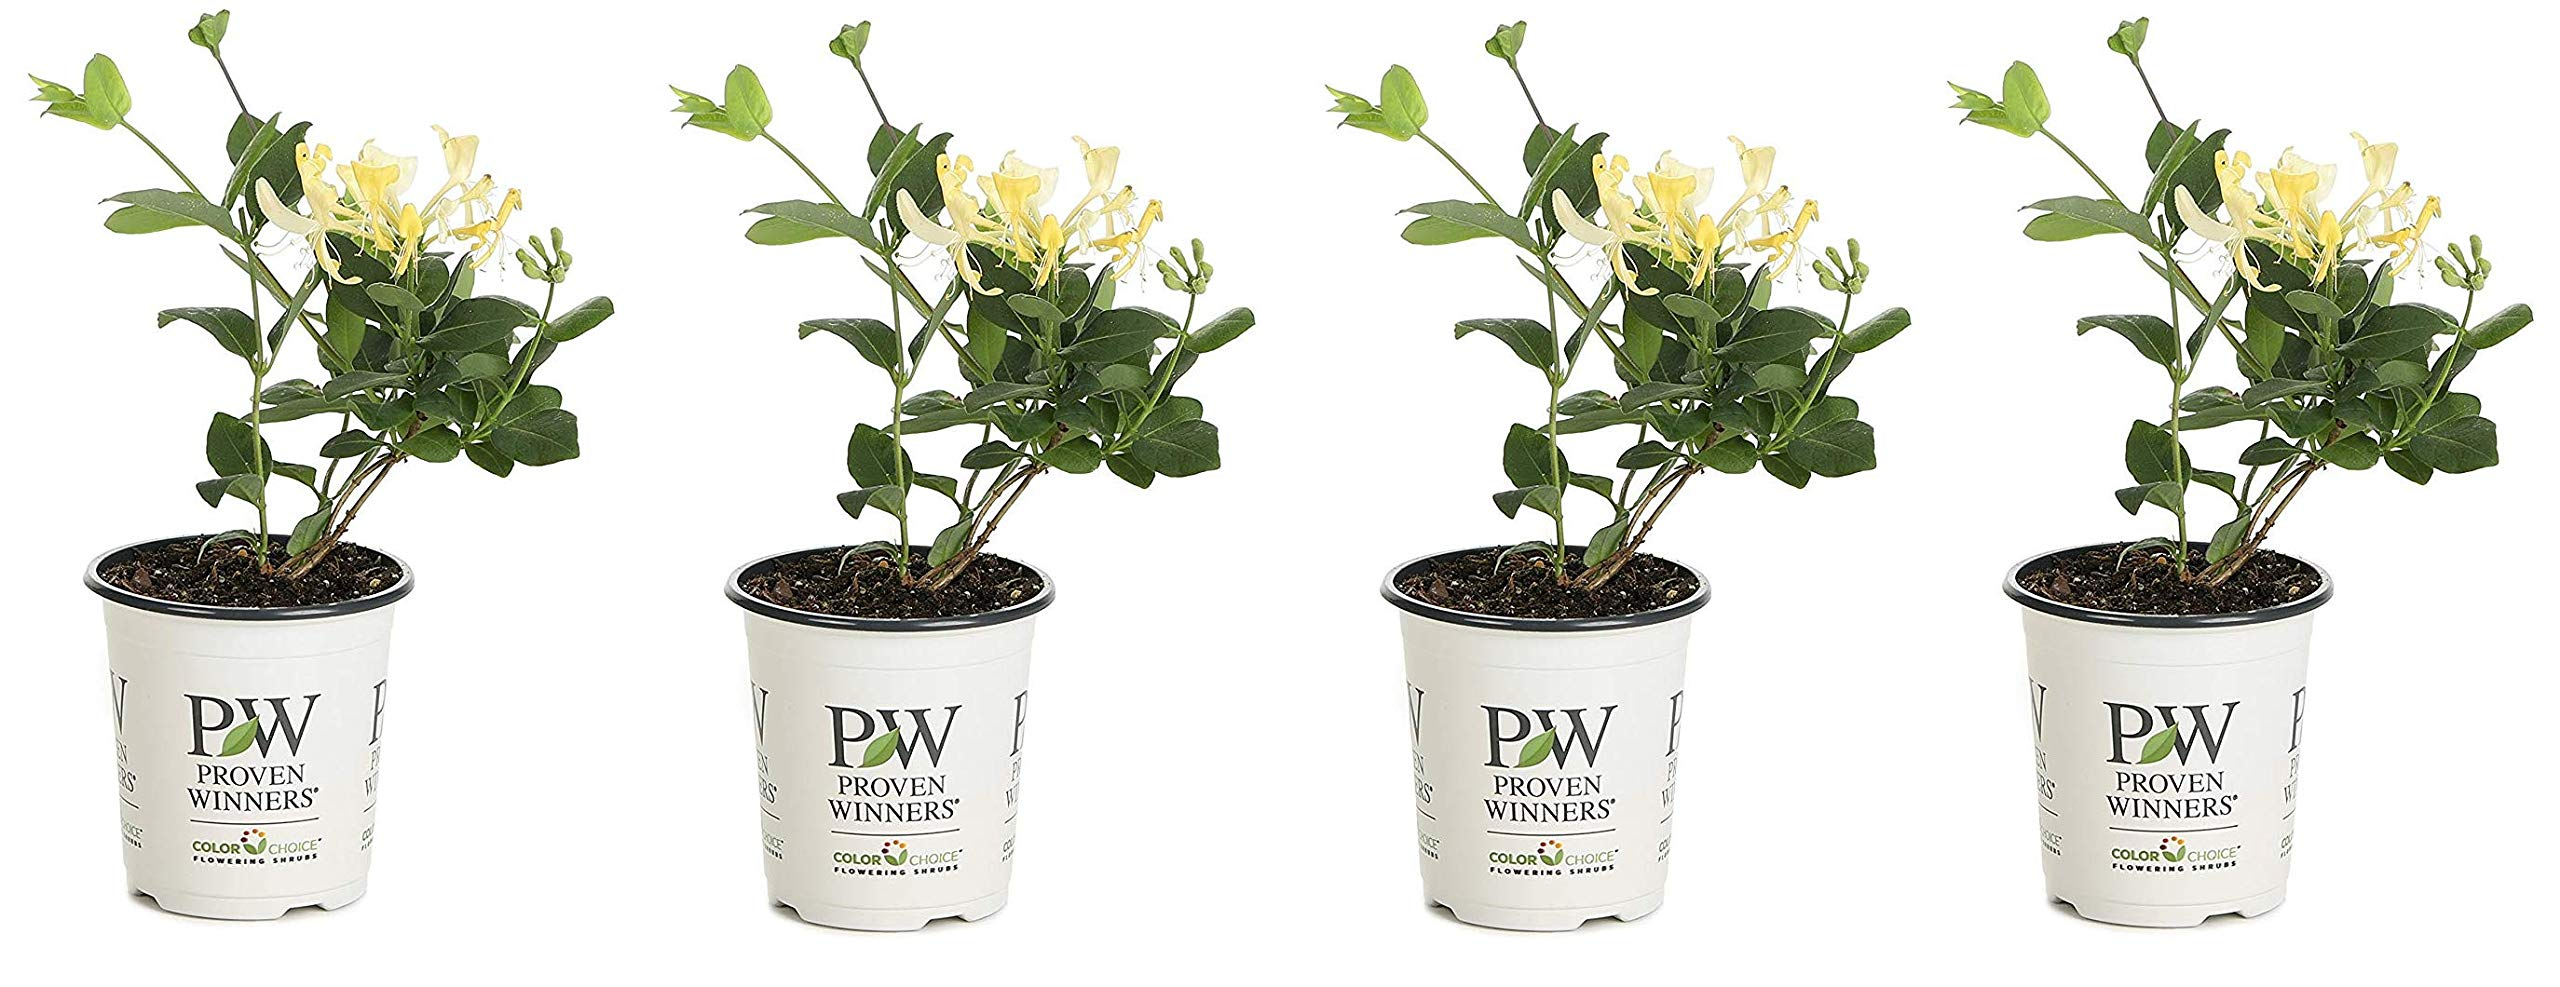 4.5 in. qt. Scentsation Honeysuckle (Lonicera) Live Shrub, Yellow Flowers and Red Berries (Fоur Расk) by Proven Winners (Image #1)